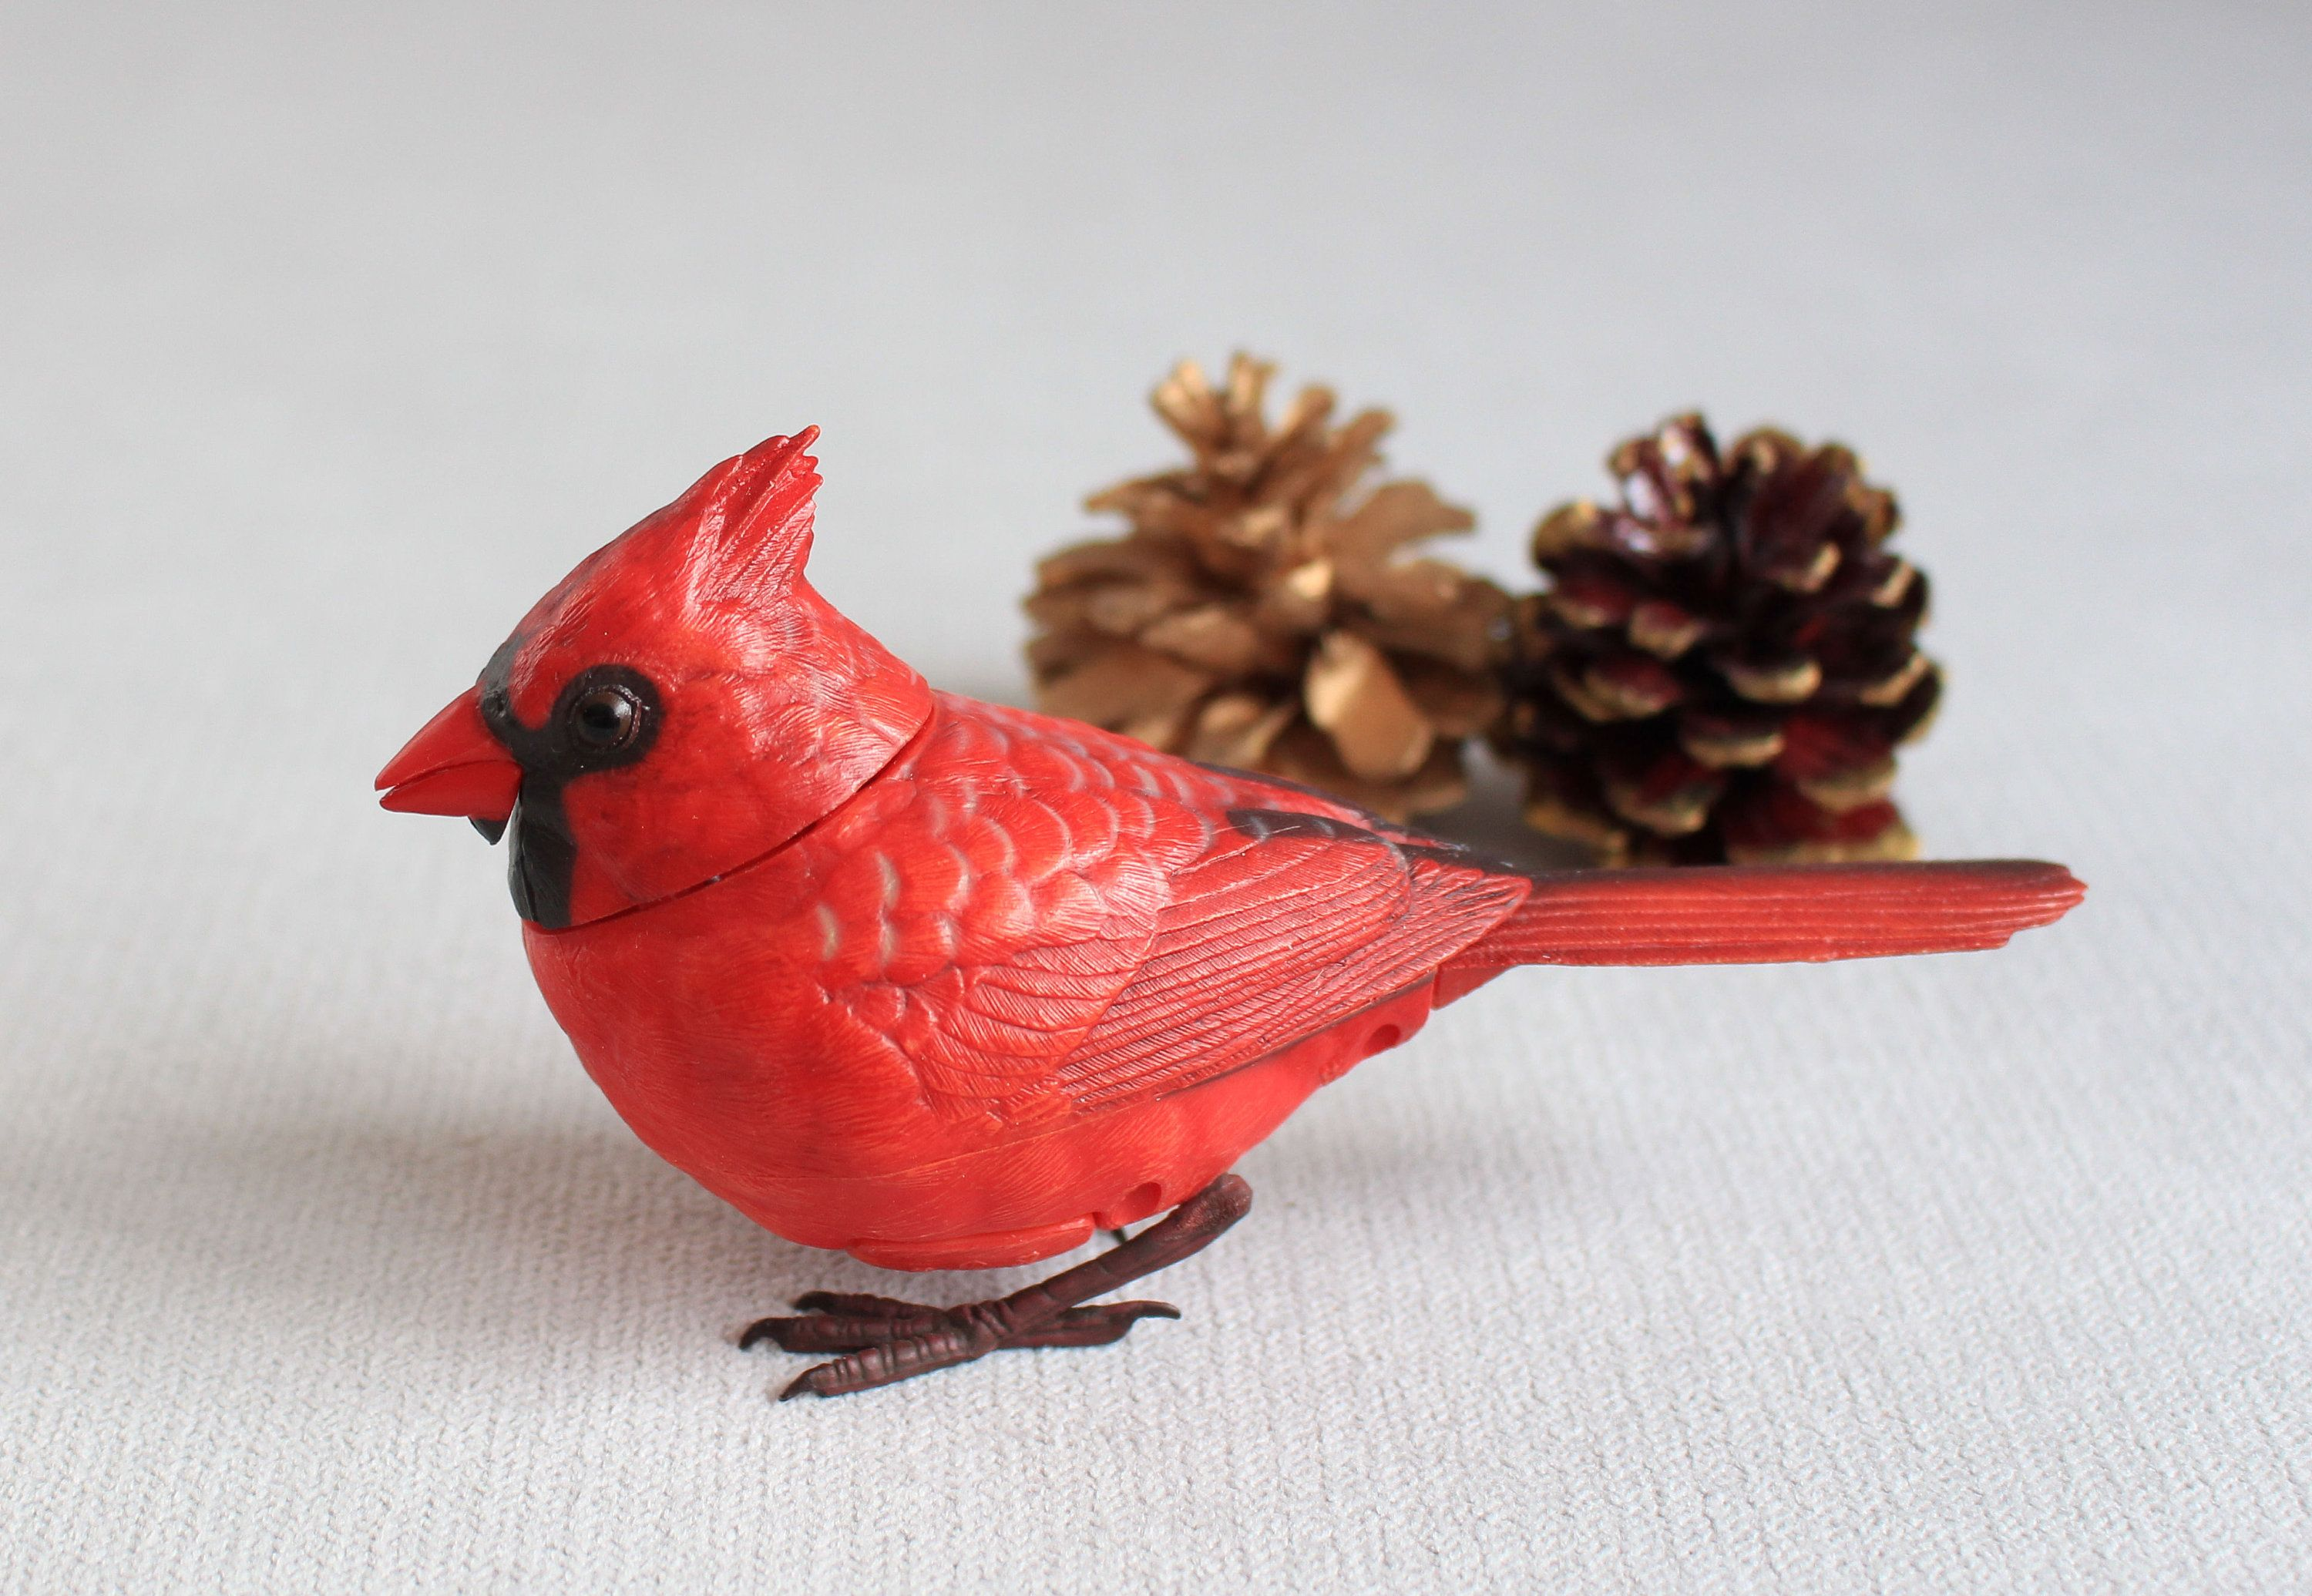 Singing Red Cardinal Christmas Ornaments Red Cardinal Decoration Bird For Table Decoration Motion Tree Orn Cardinal Christmas Decor Red Cardinal Red Birds